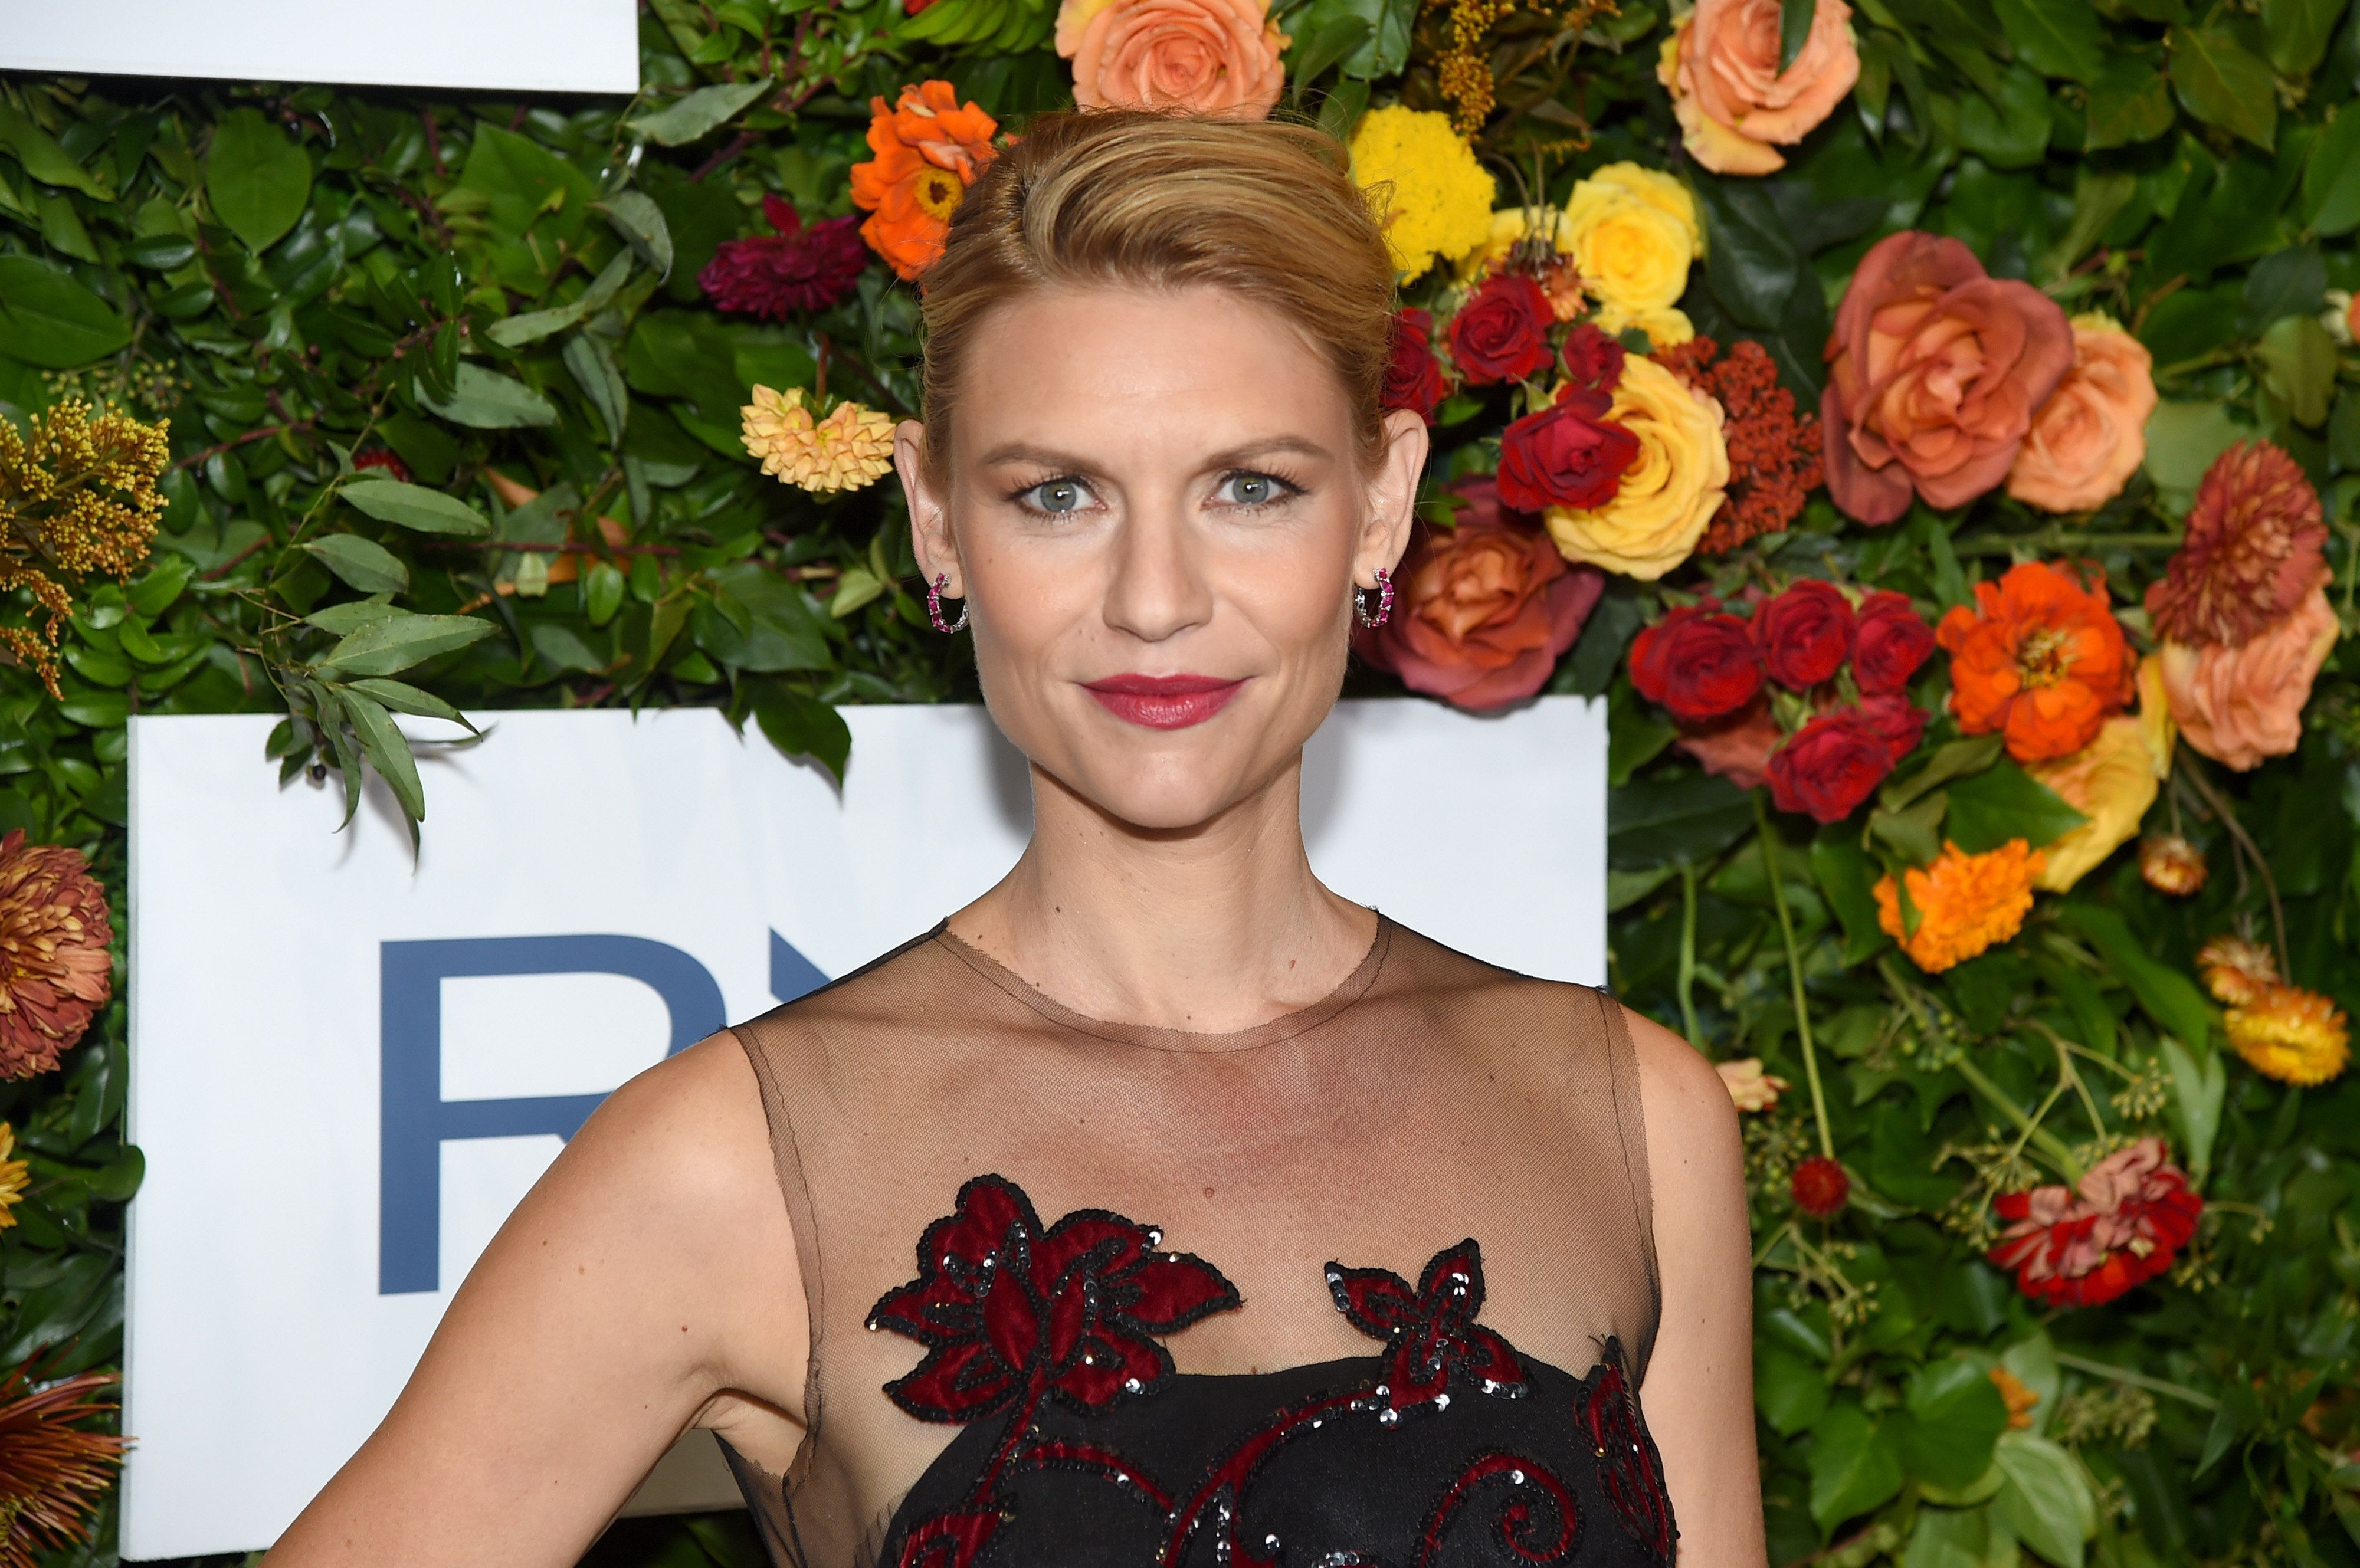 Claire Danes gave birth to her first son, Cyrus, in 2012. She welcomed a second son in 2018.